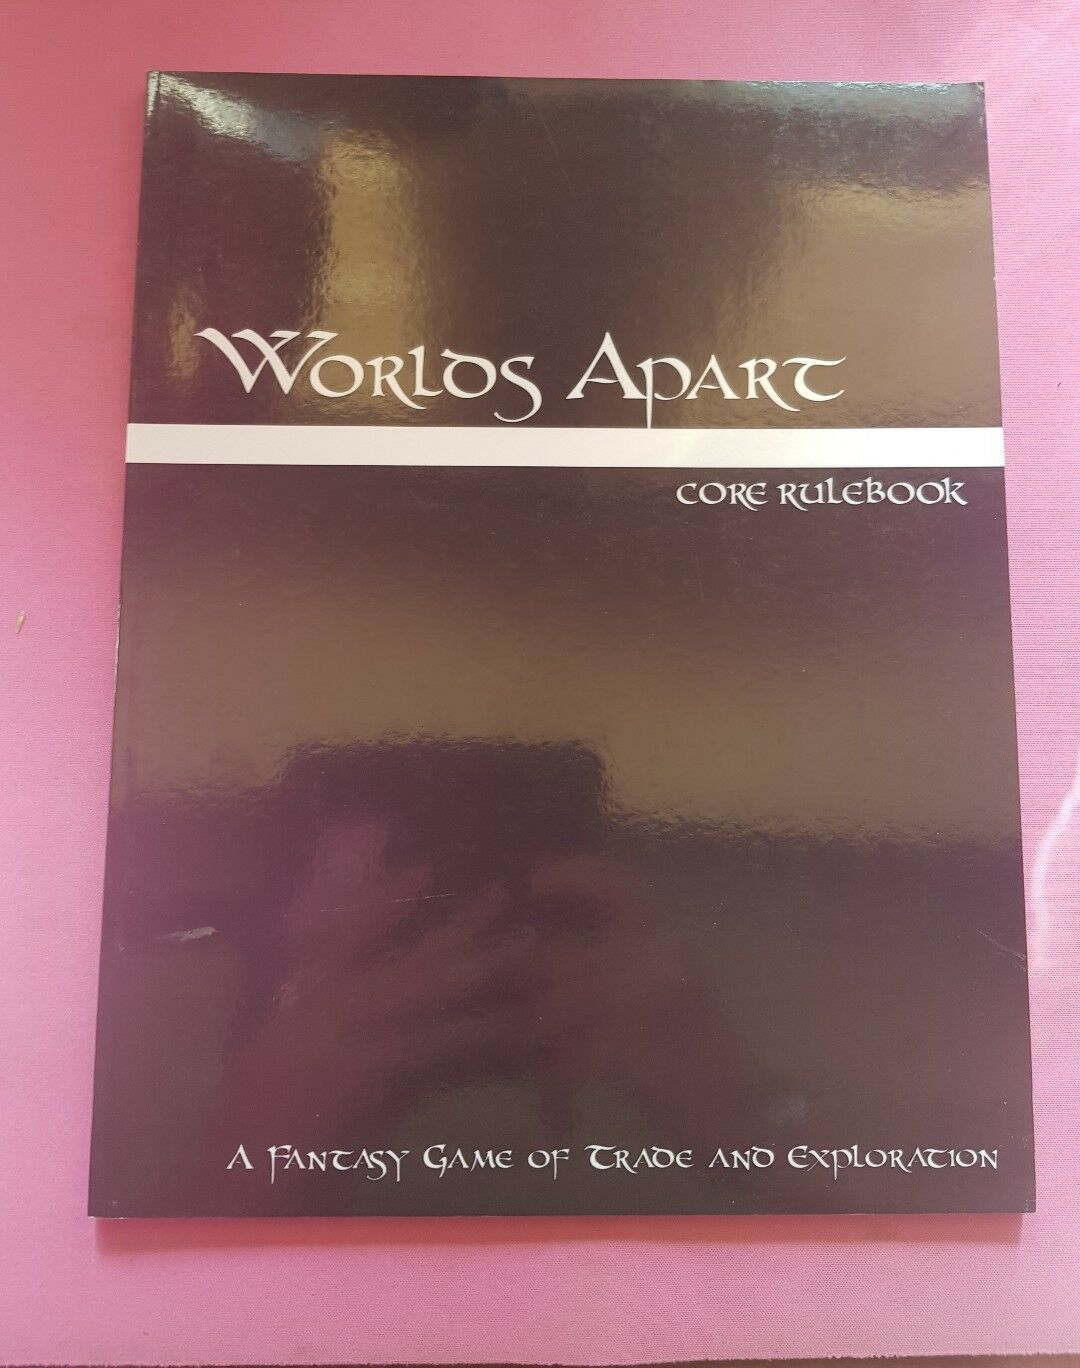 WORLDS APART CORE RULEBOOK - FANTASY TRADE EXPLORATION RPG ROLEPLAYING ROLEPLAY